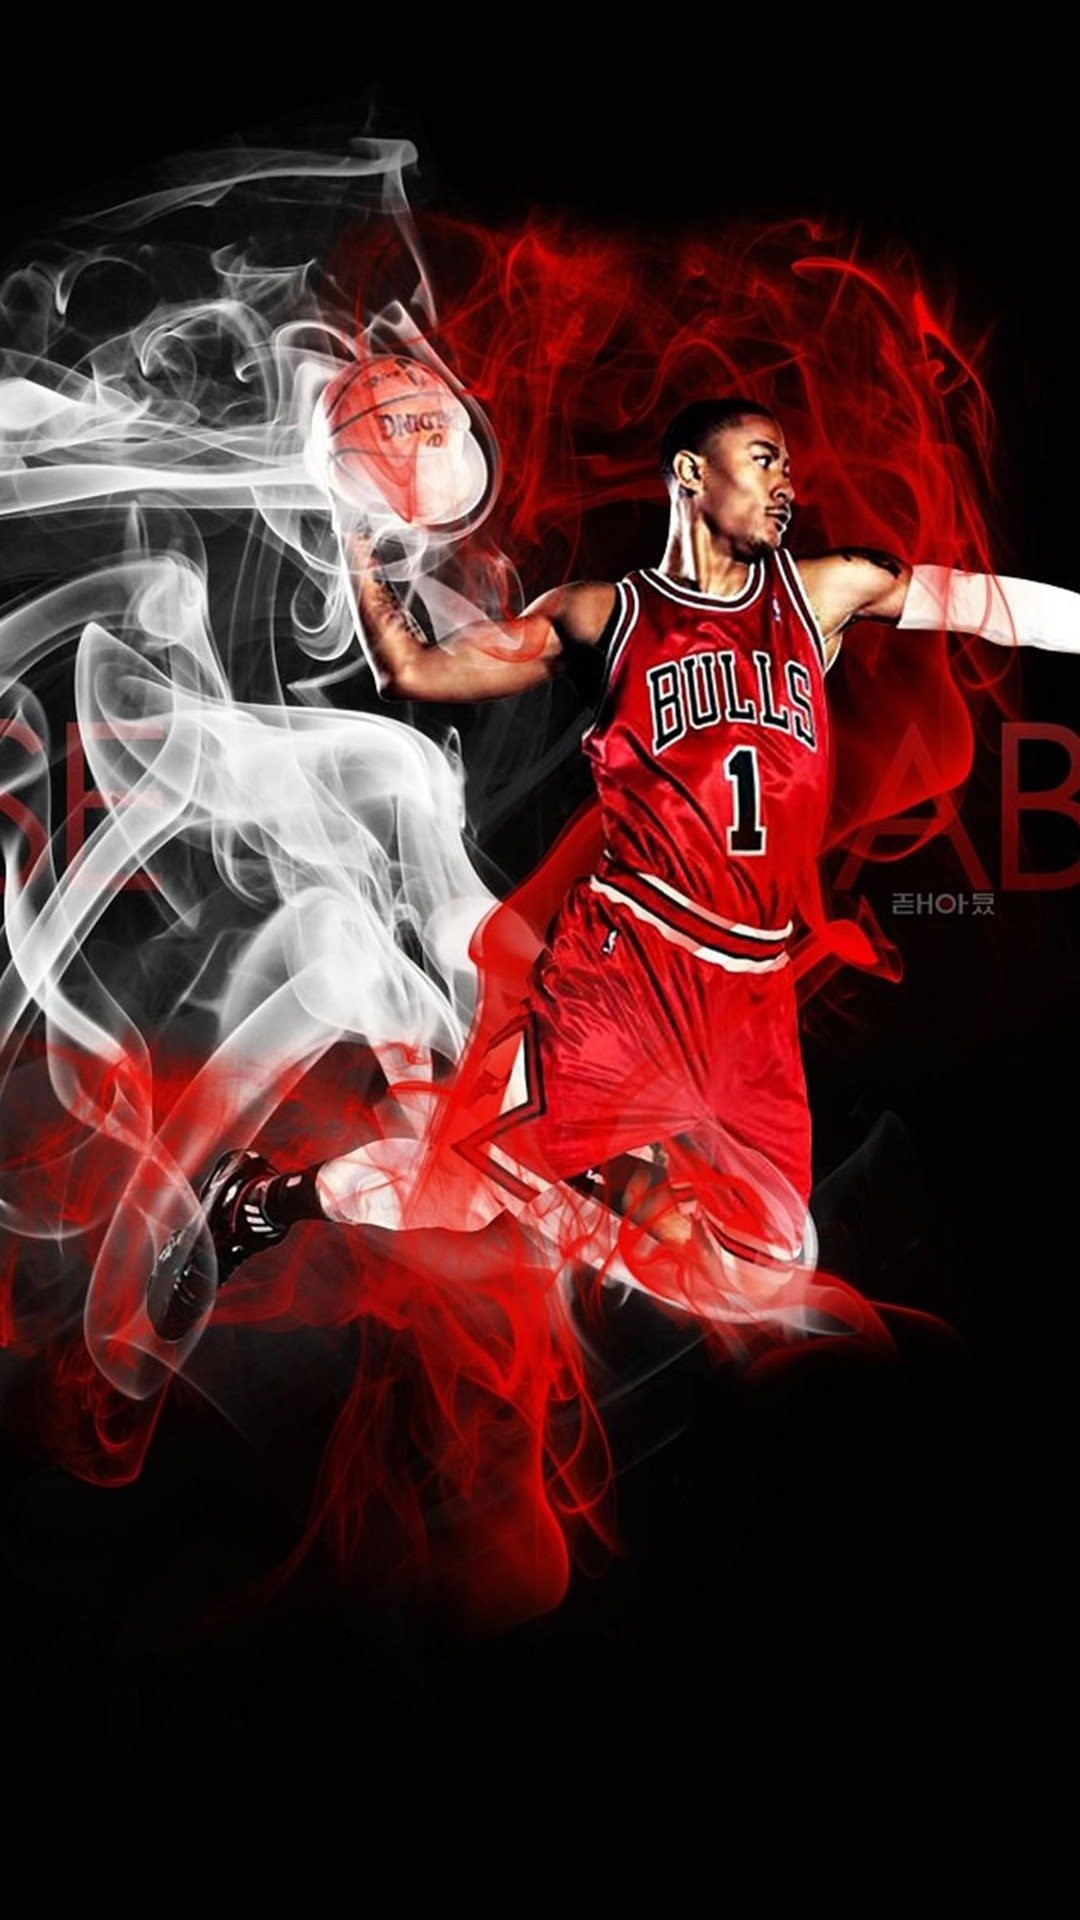 1920x1080 nba wallpapers hd wallpapers backgrounds images art photos